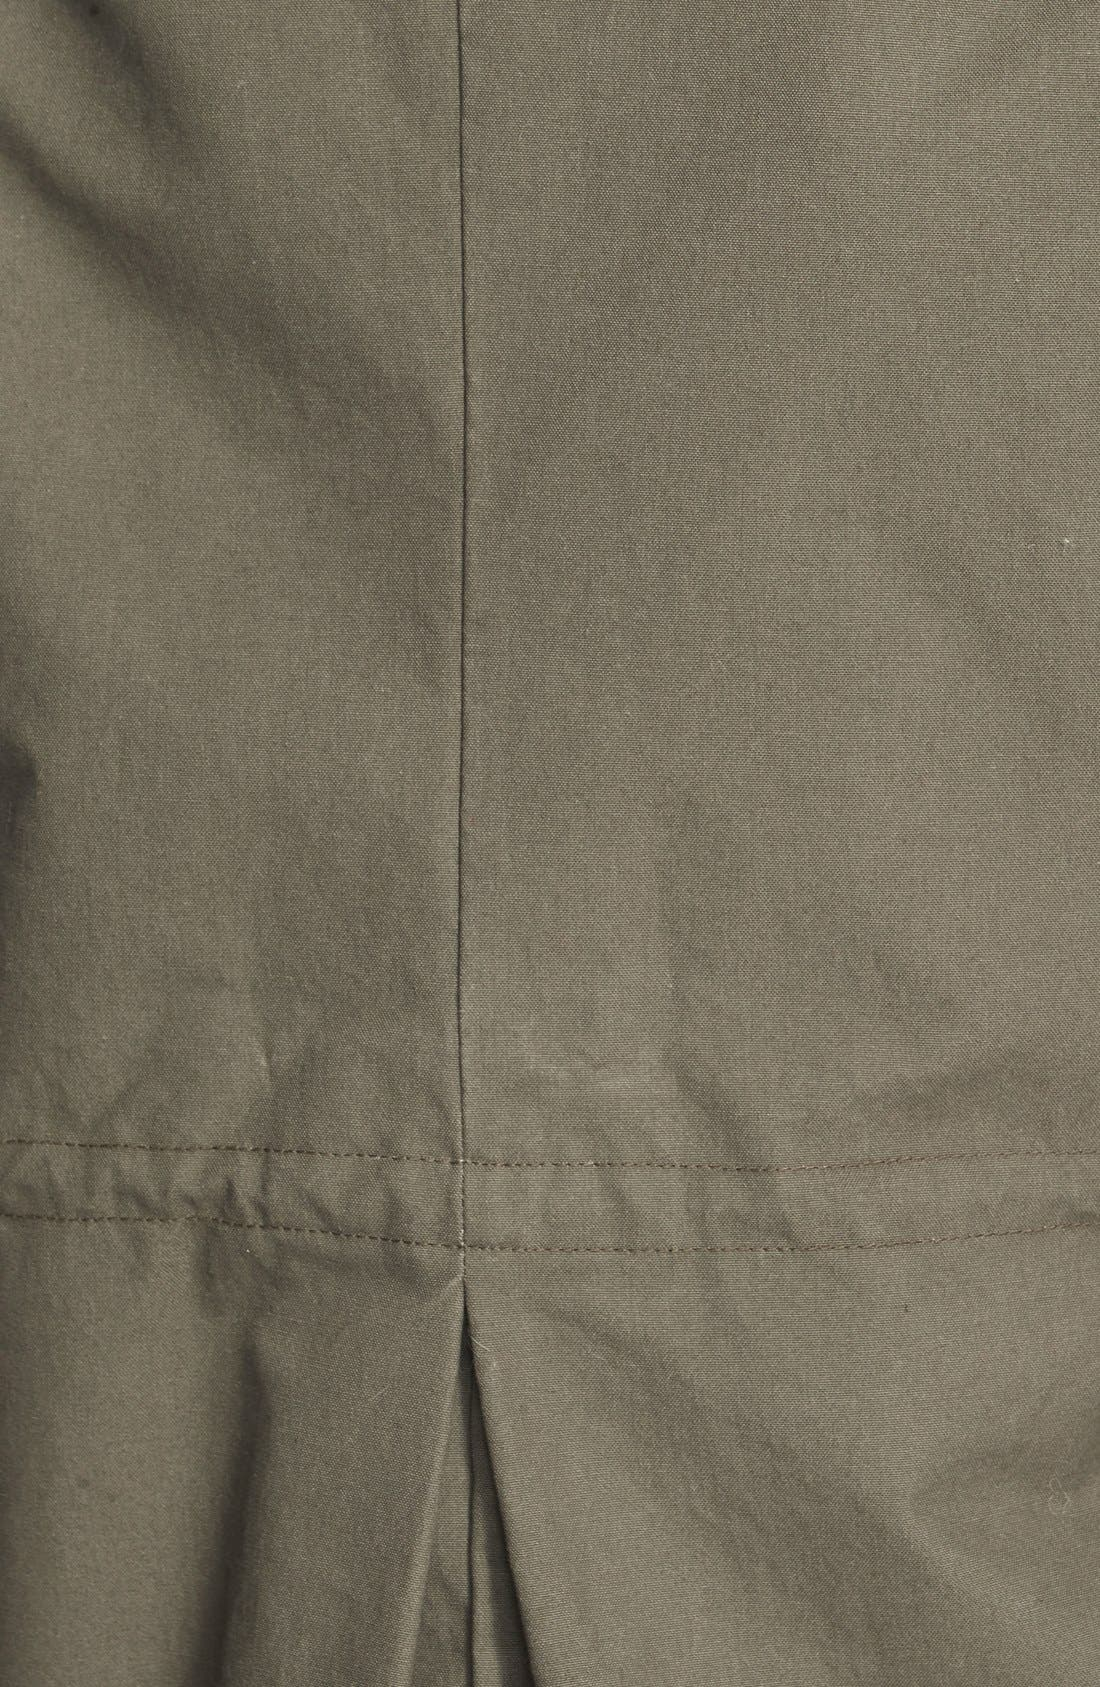 JOIE,                             'Evandale' Embroidered Military Jacket,                             Alternate thumbnail 2, color,                             344